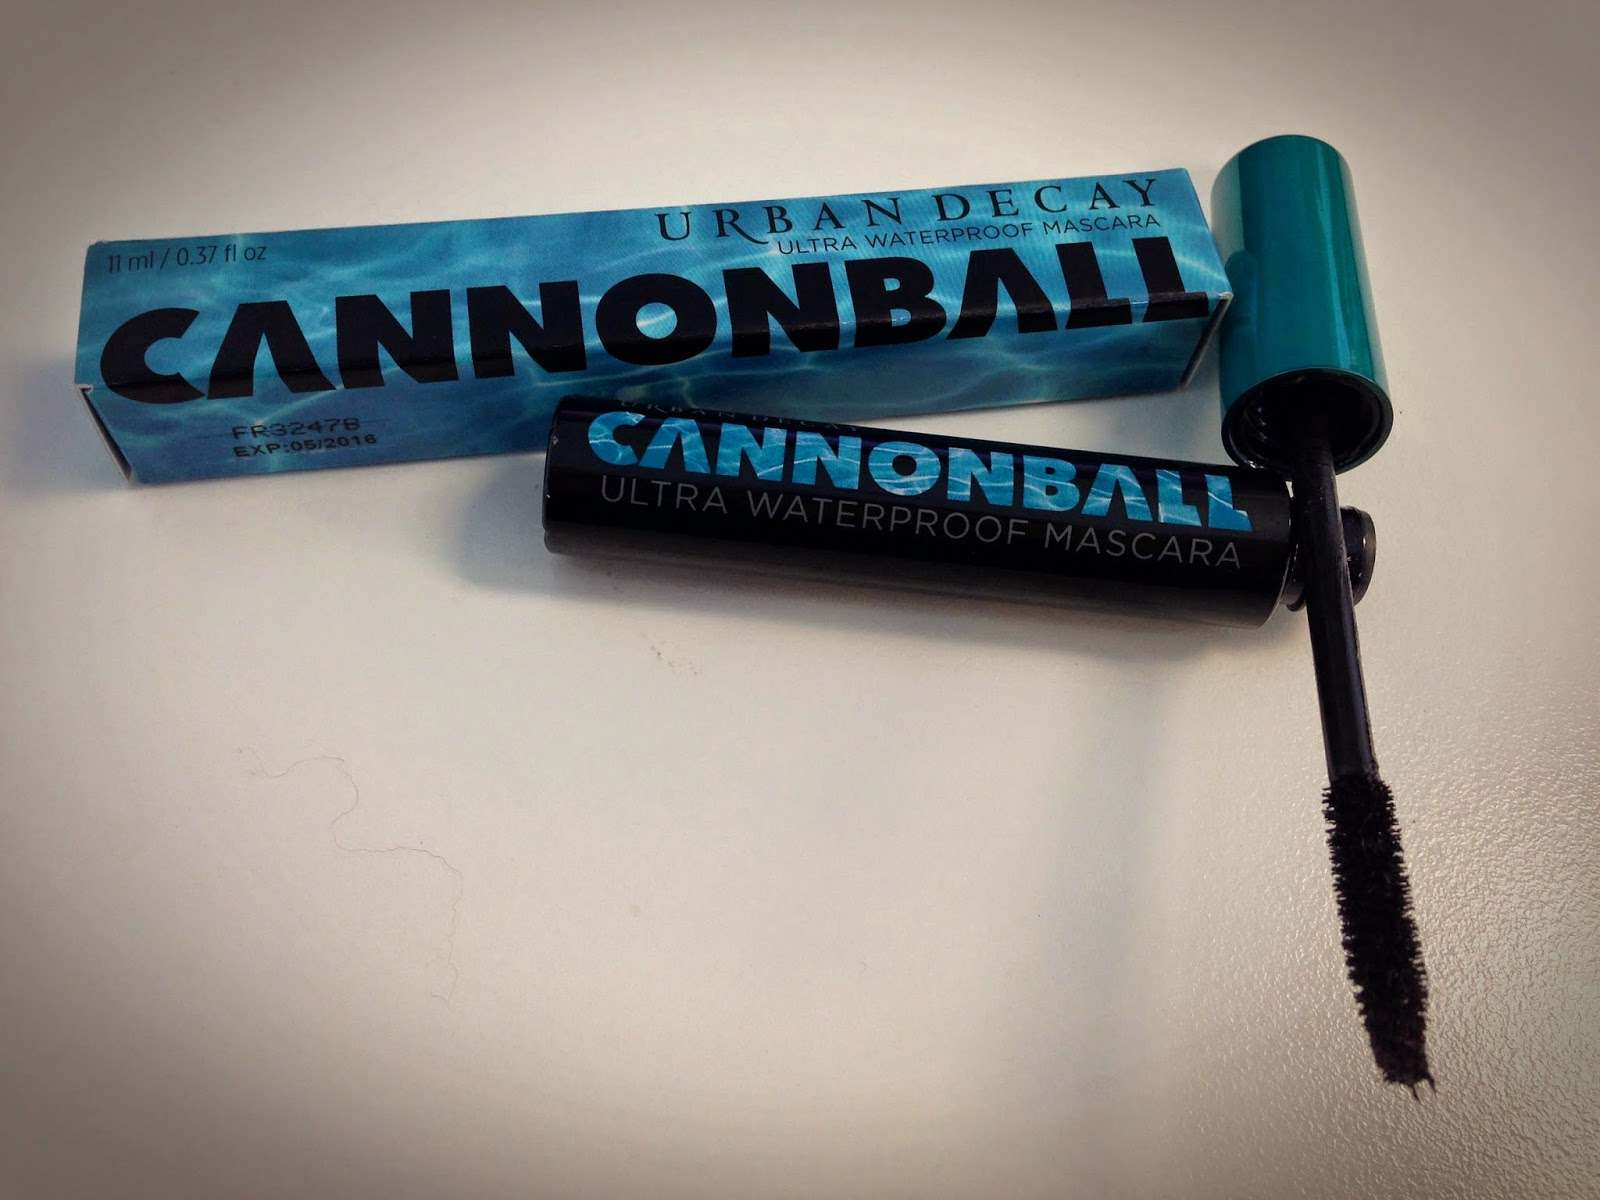 a052f71d530 REVIEW: Urban Decay Cannonball (Waterproof) Mascara / Reflection of ...